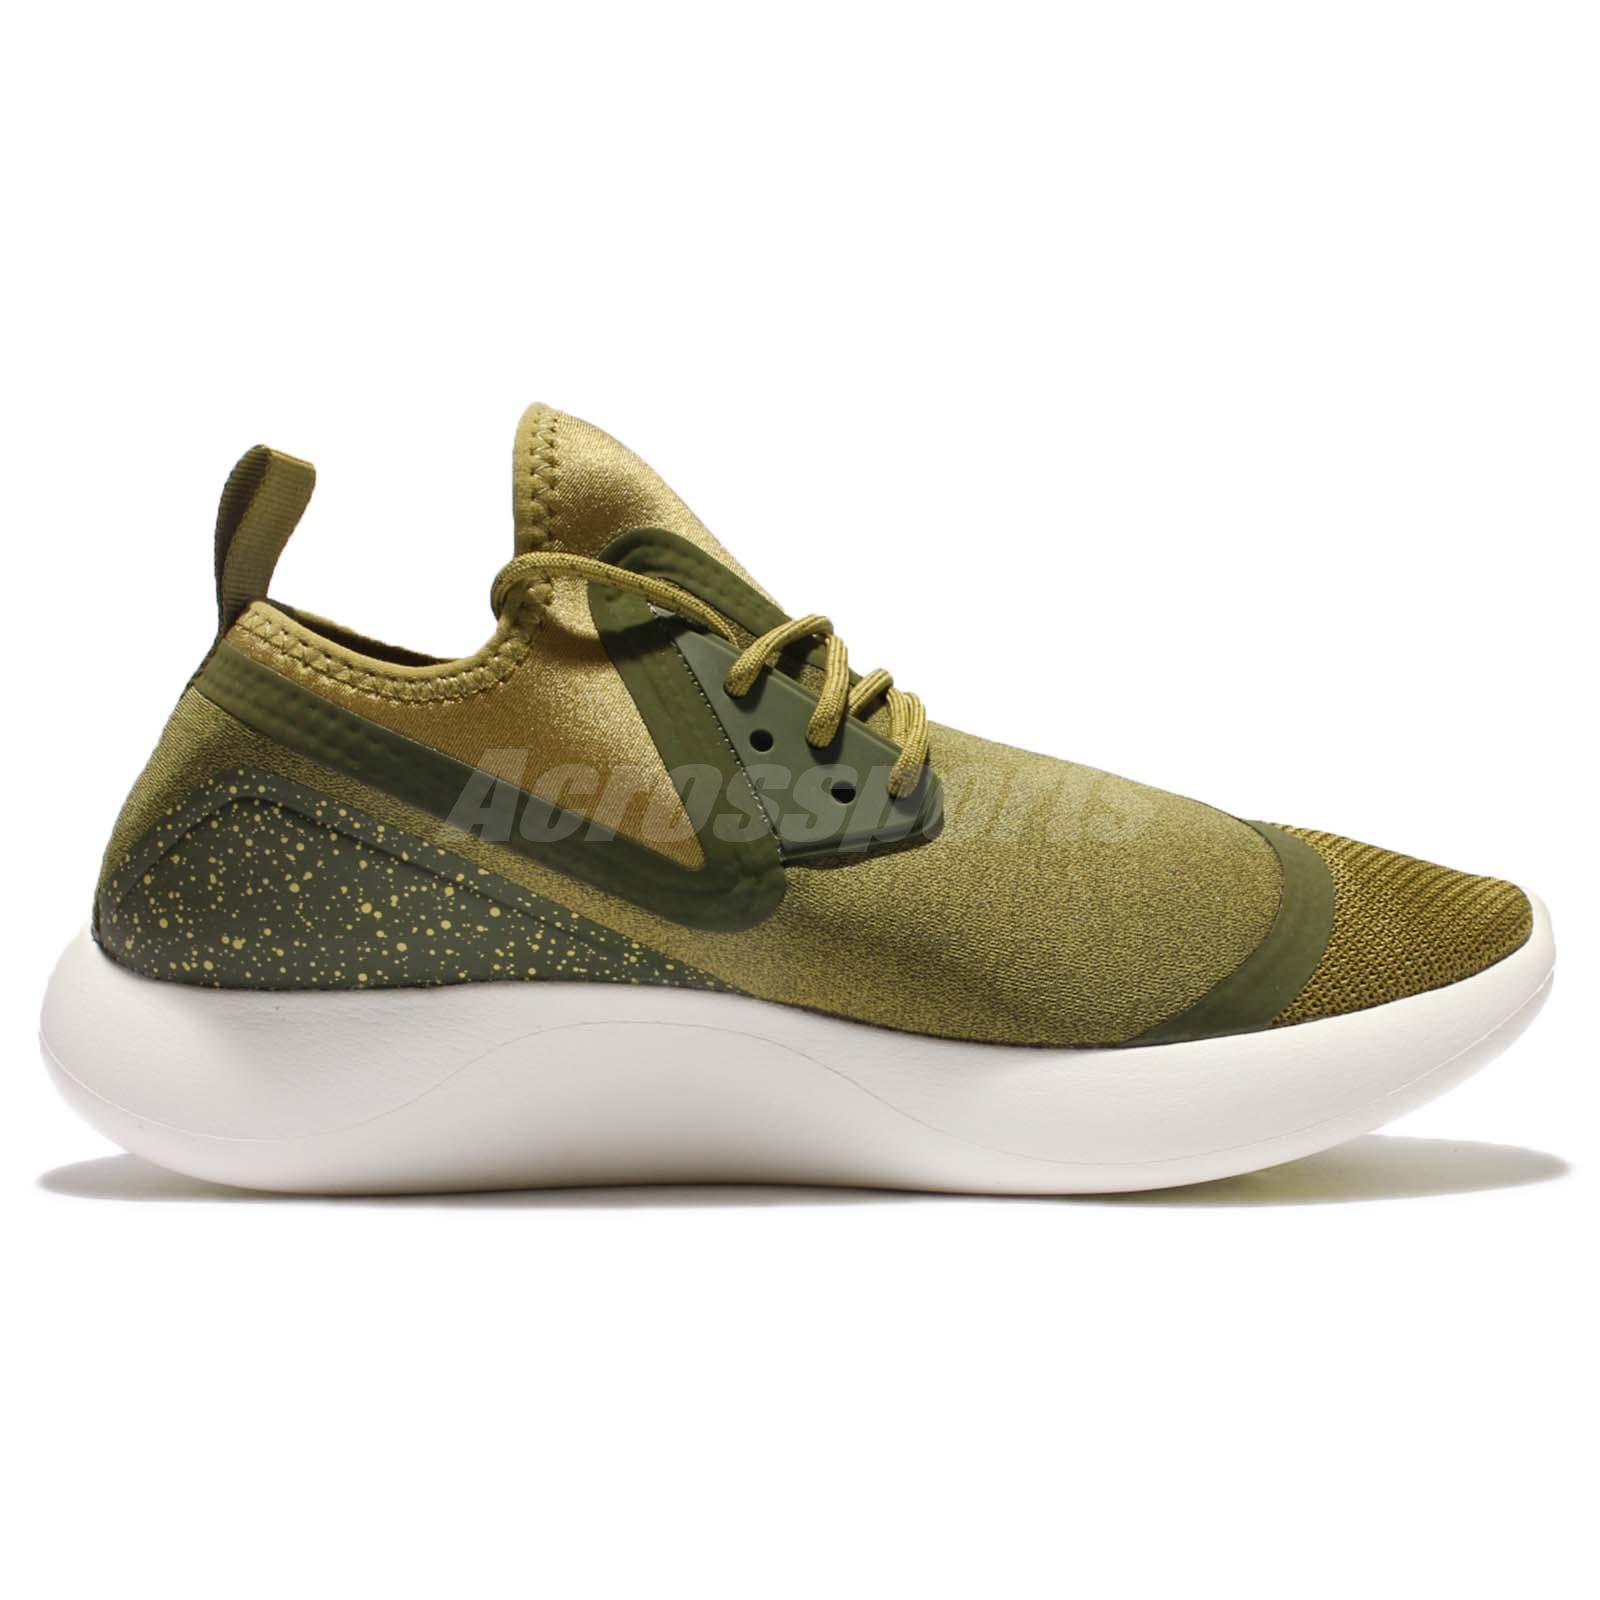 Nike Lunarcharge Essential Camper Green Men Running Shoes Sneakers 923619-300